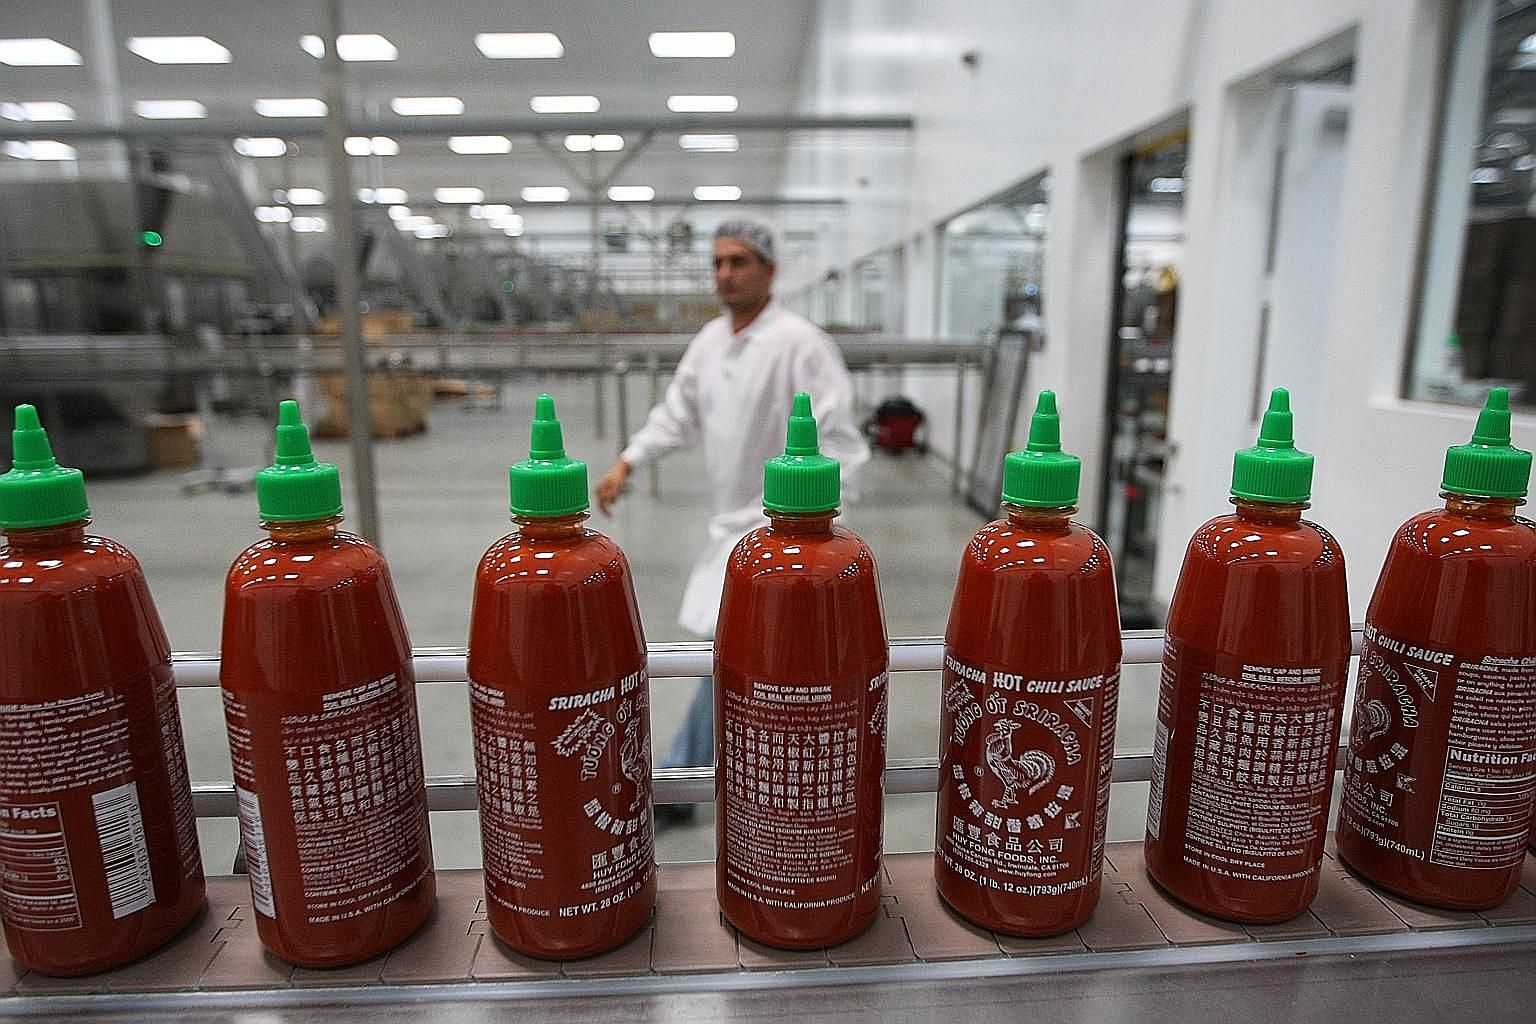 This photograph taken in 2014 shows bottles of Sriracha Hot Chilli Sauce at Huy Fong Foods' California plant.